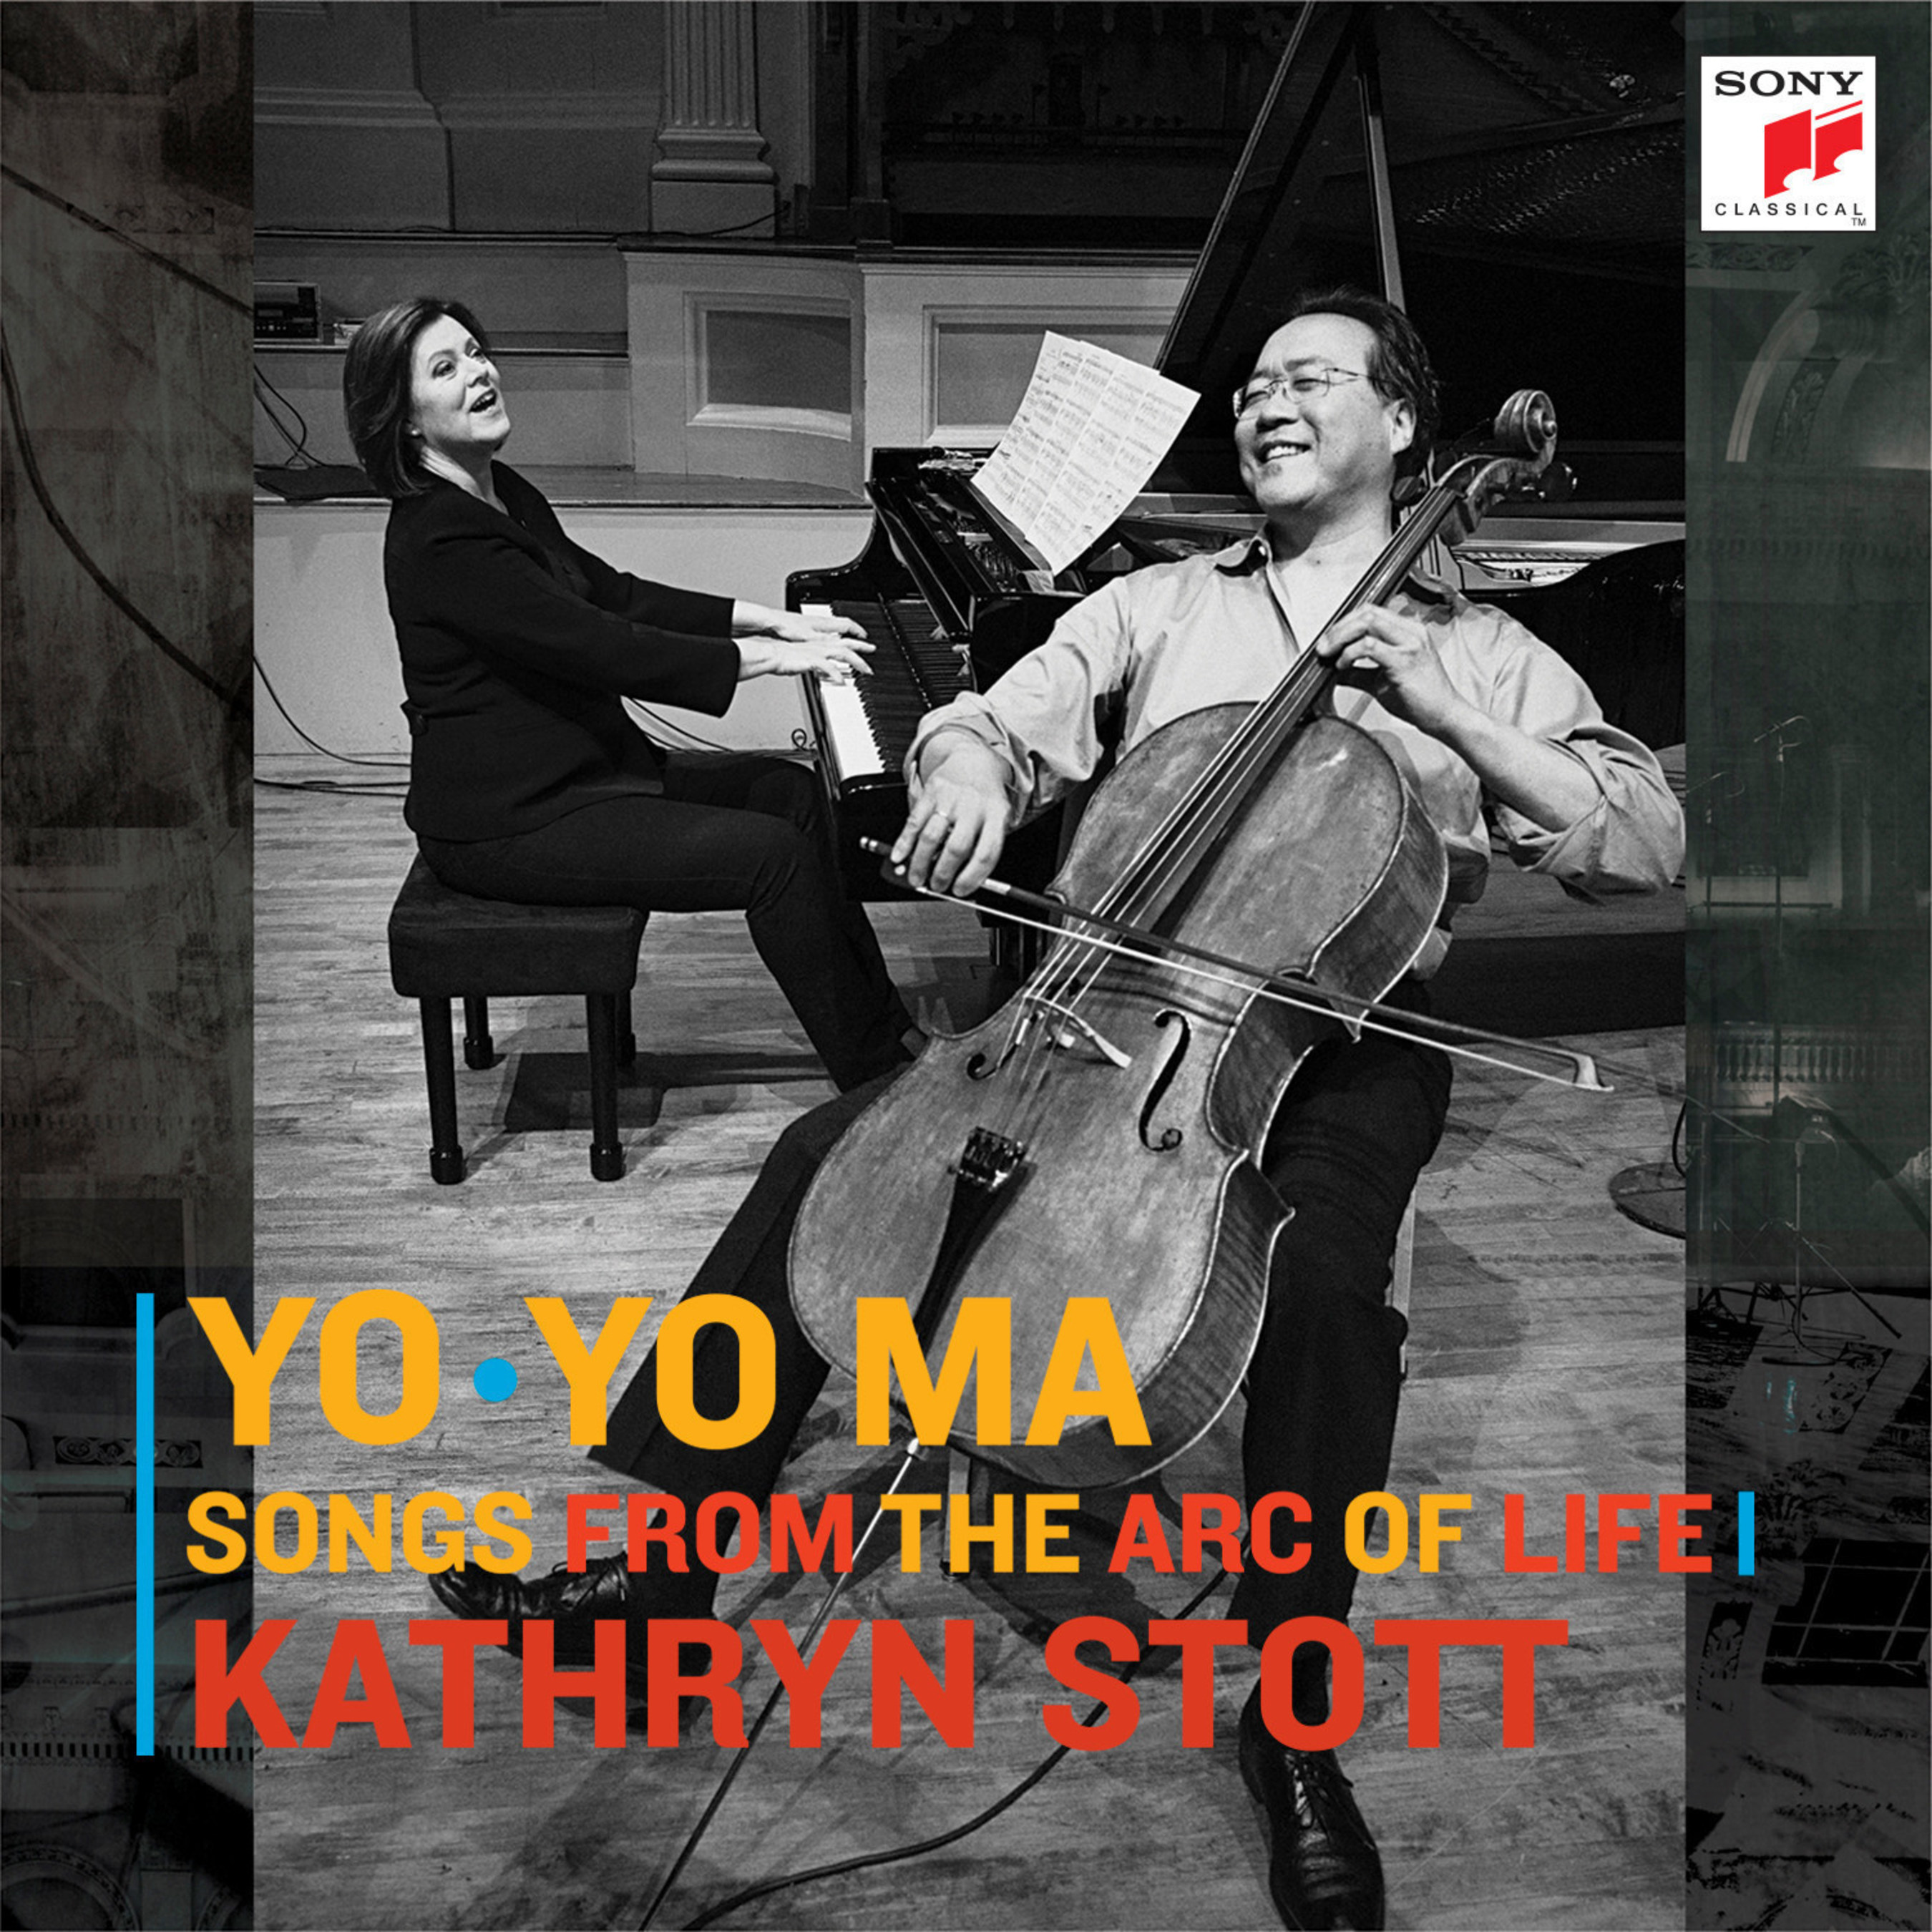 Longtime Friends, Cellist Yo-Yo Ma & Pianist Kathryn Stott Collaborate On New Album Songs From The Arc Of Life